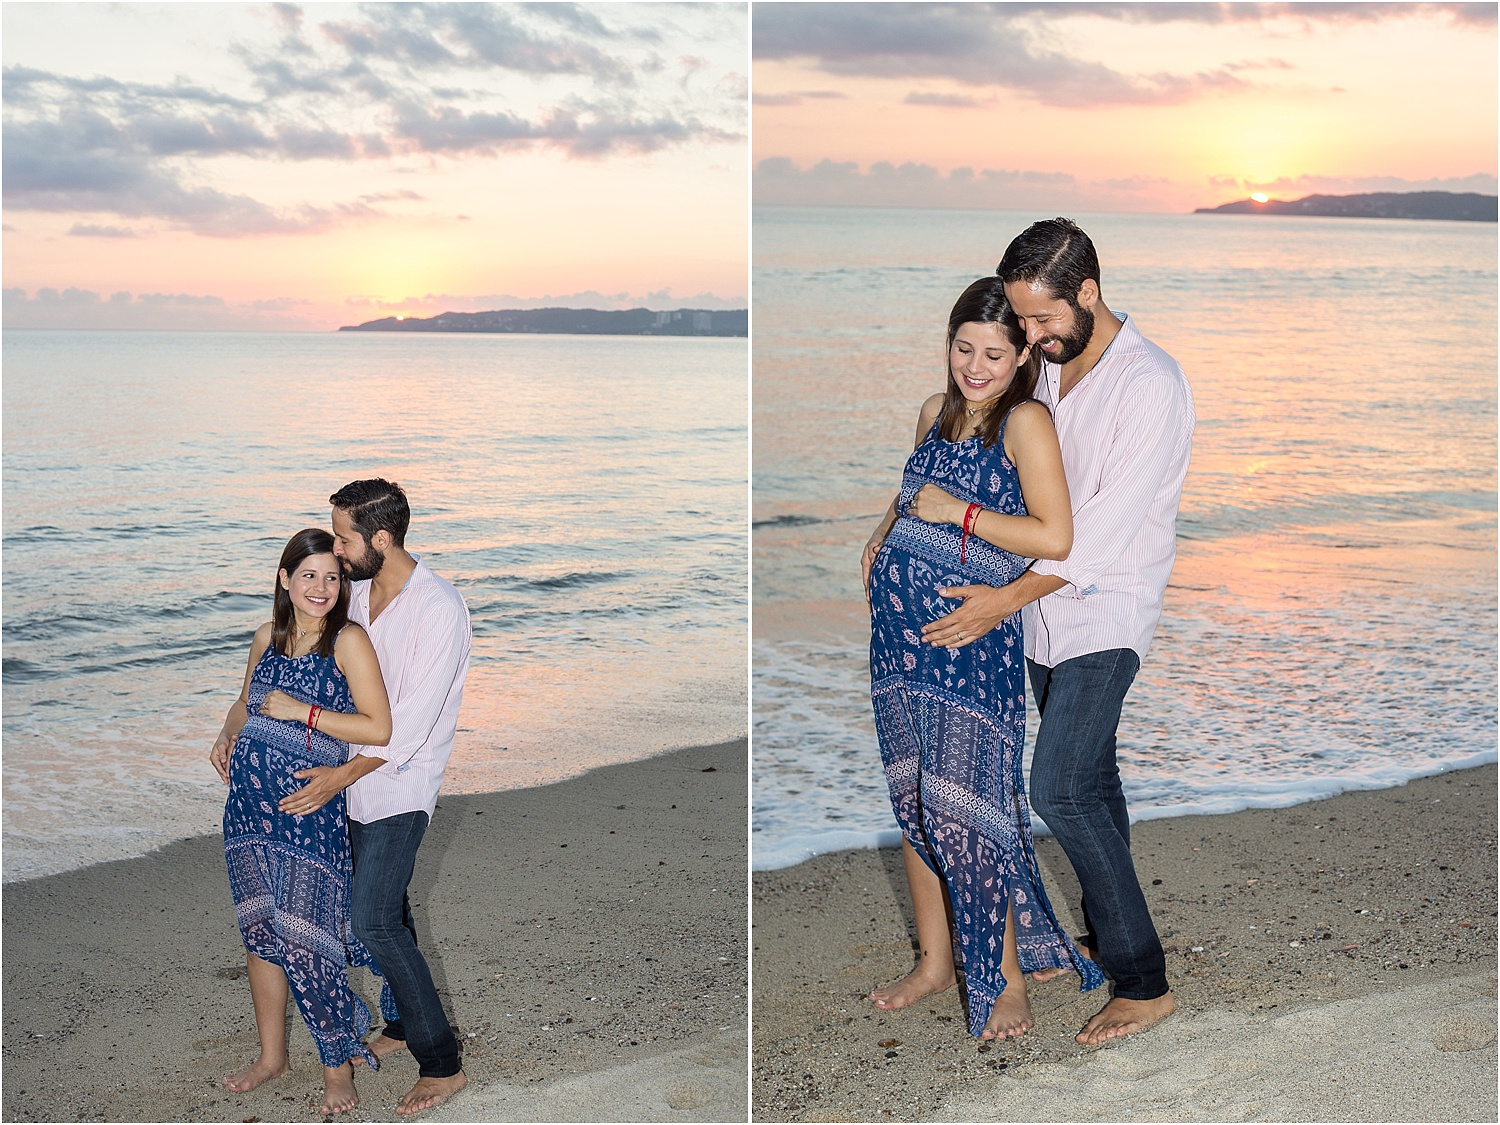 maternity photo on the beach - Using Flash for Beach Portraits